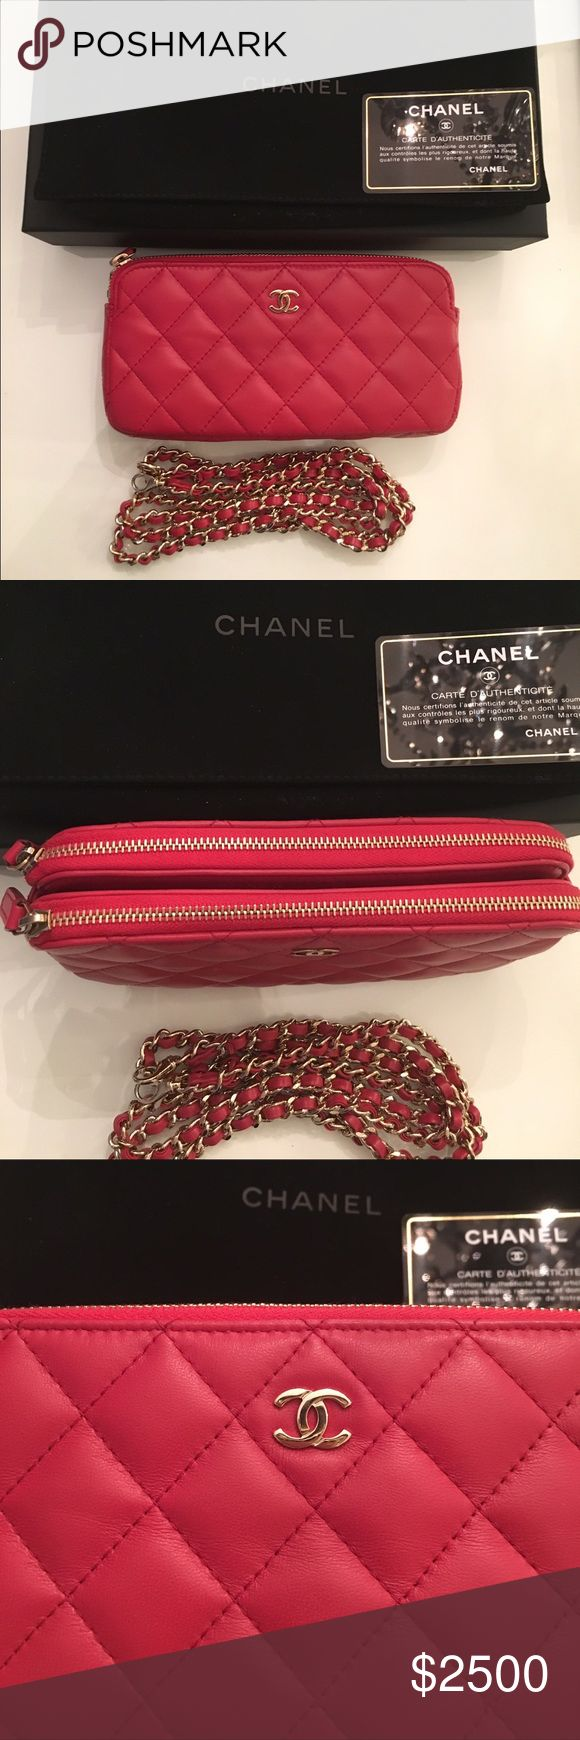 Chanel WOC 2016 BNWT 2016 collection chanel woc brand new with tags 100% authentic. Deep pink/red lambskin with gold hw. Will come with box auth card dust bag.  Brand new rare style and color!  Sold out already. NO trades  Bags Crossbody Bags